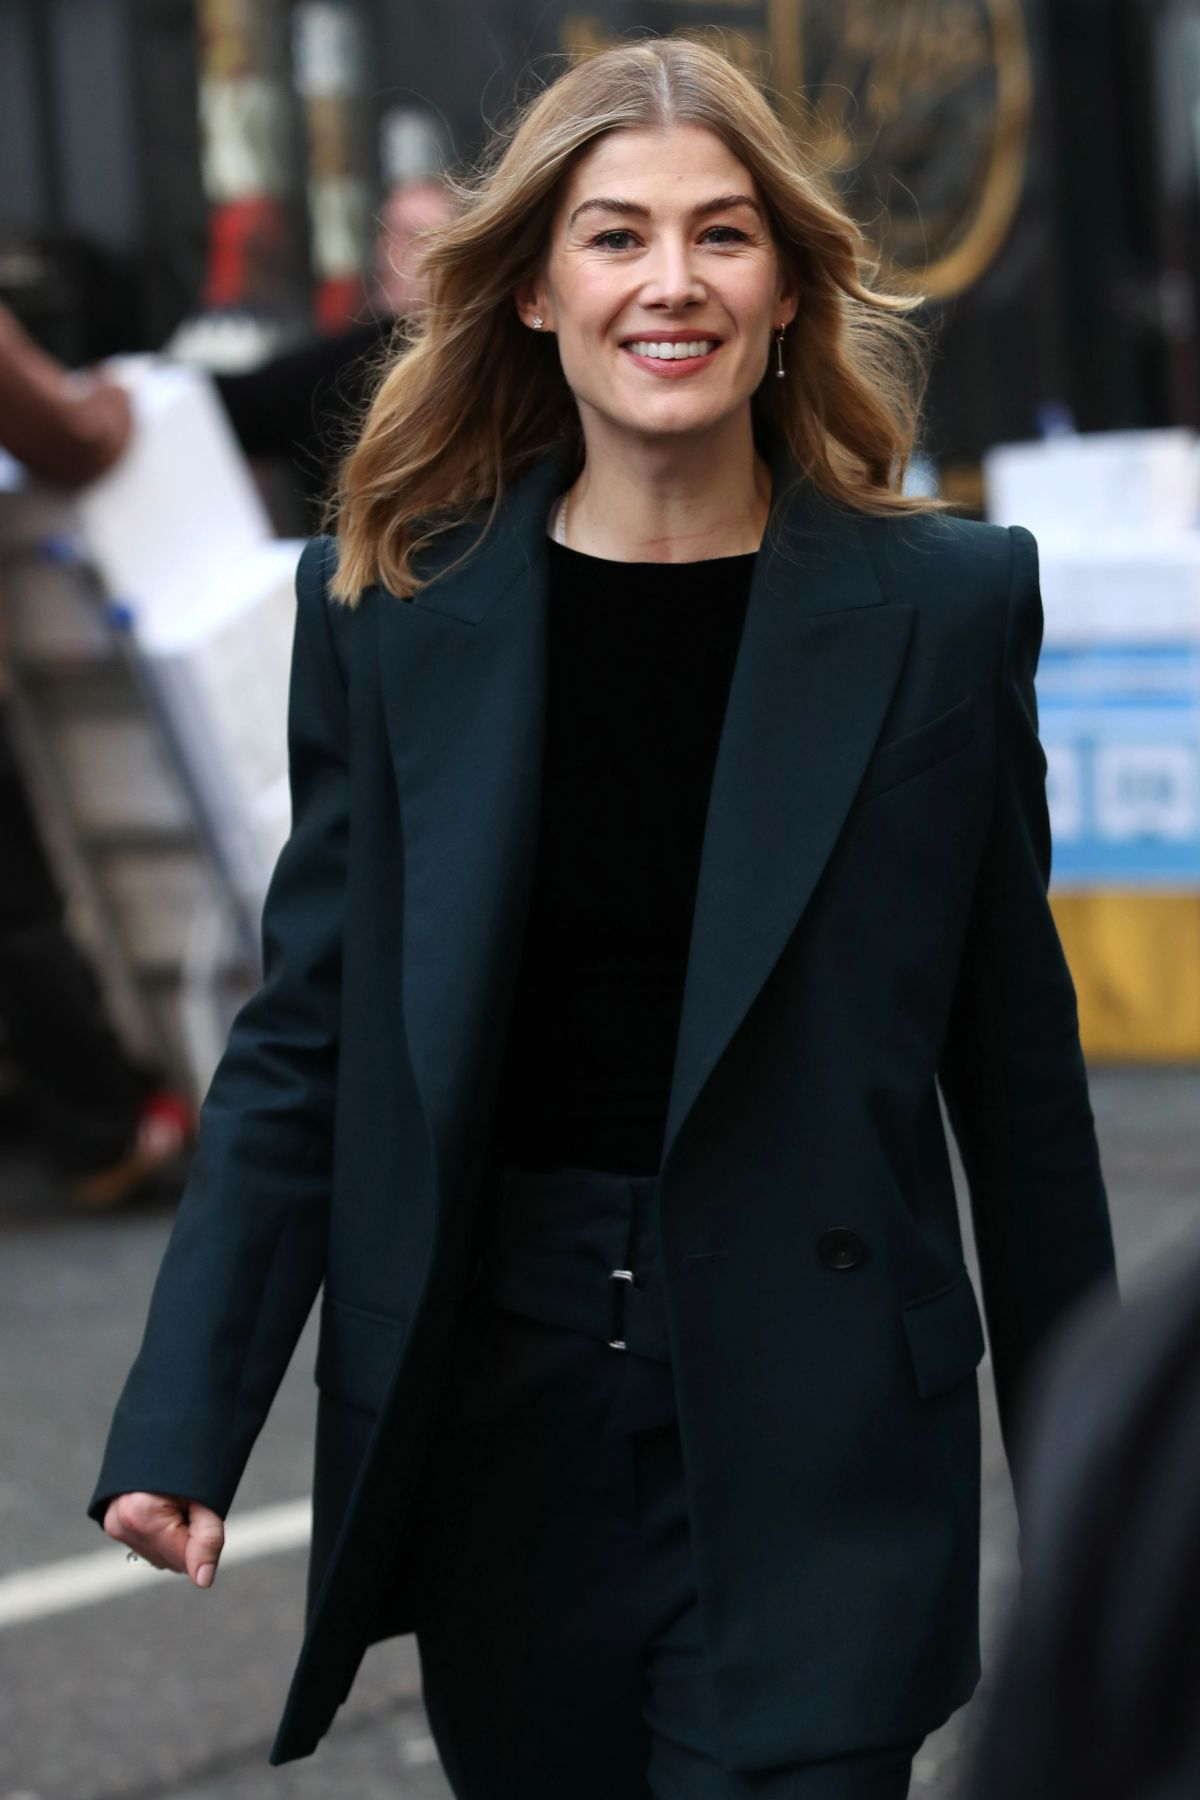 ROSAMUND PIKE Out and About in London 01/31/2019 - HawtCelebs